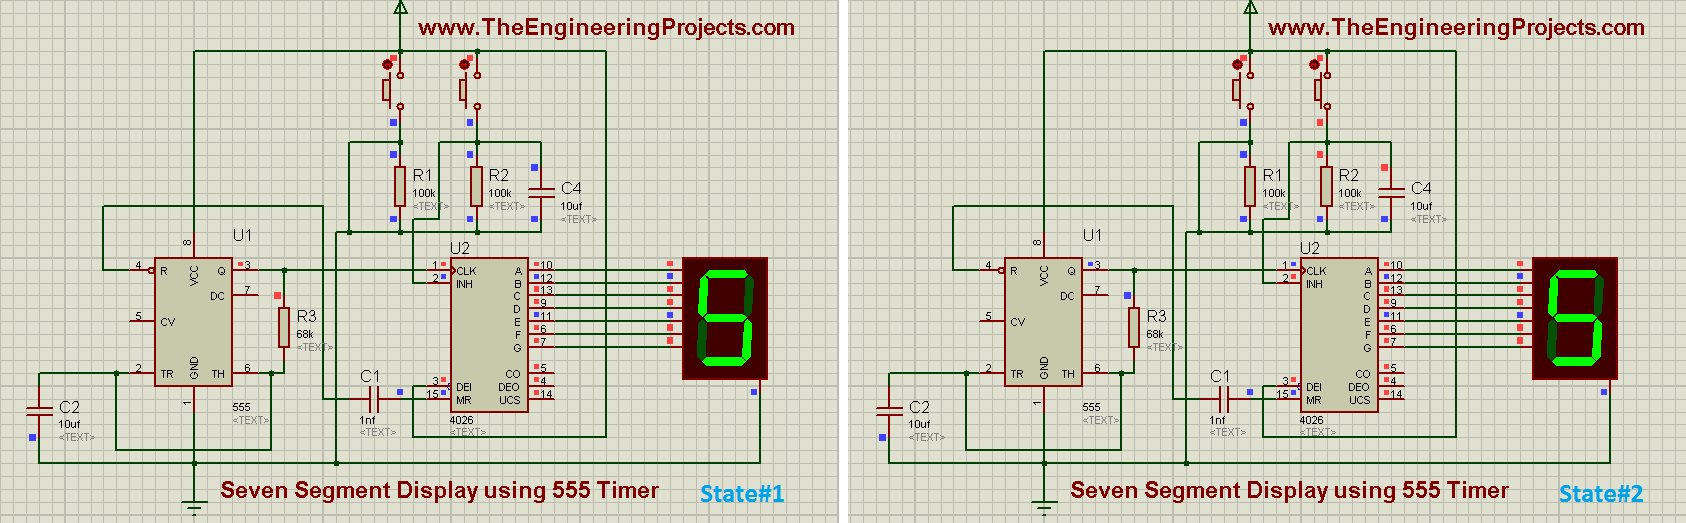 seven segment display using 555 timer, seven segment dispaly using 555 timer in proteus isis, seven segment display using 555timer, how seven segment display is designed in proteus